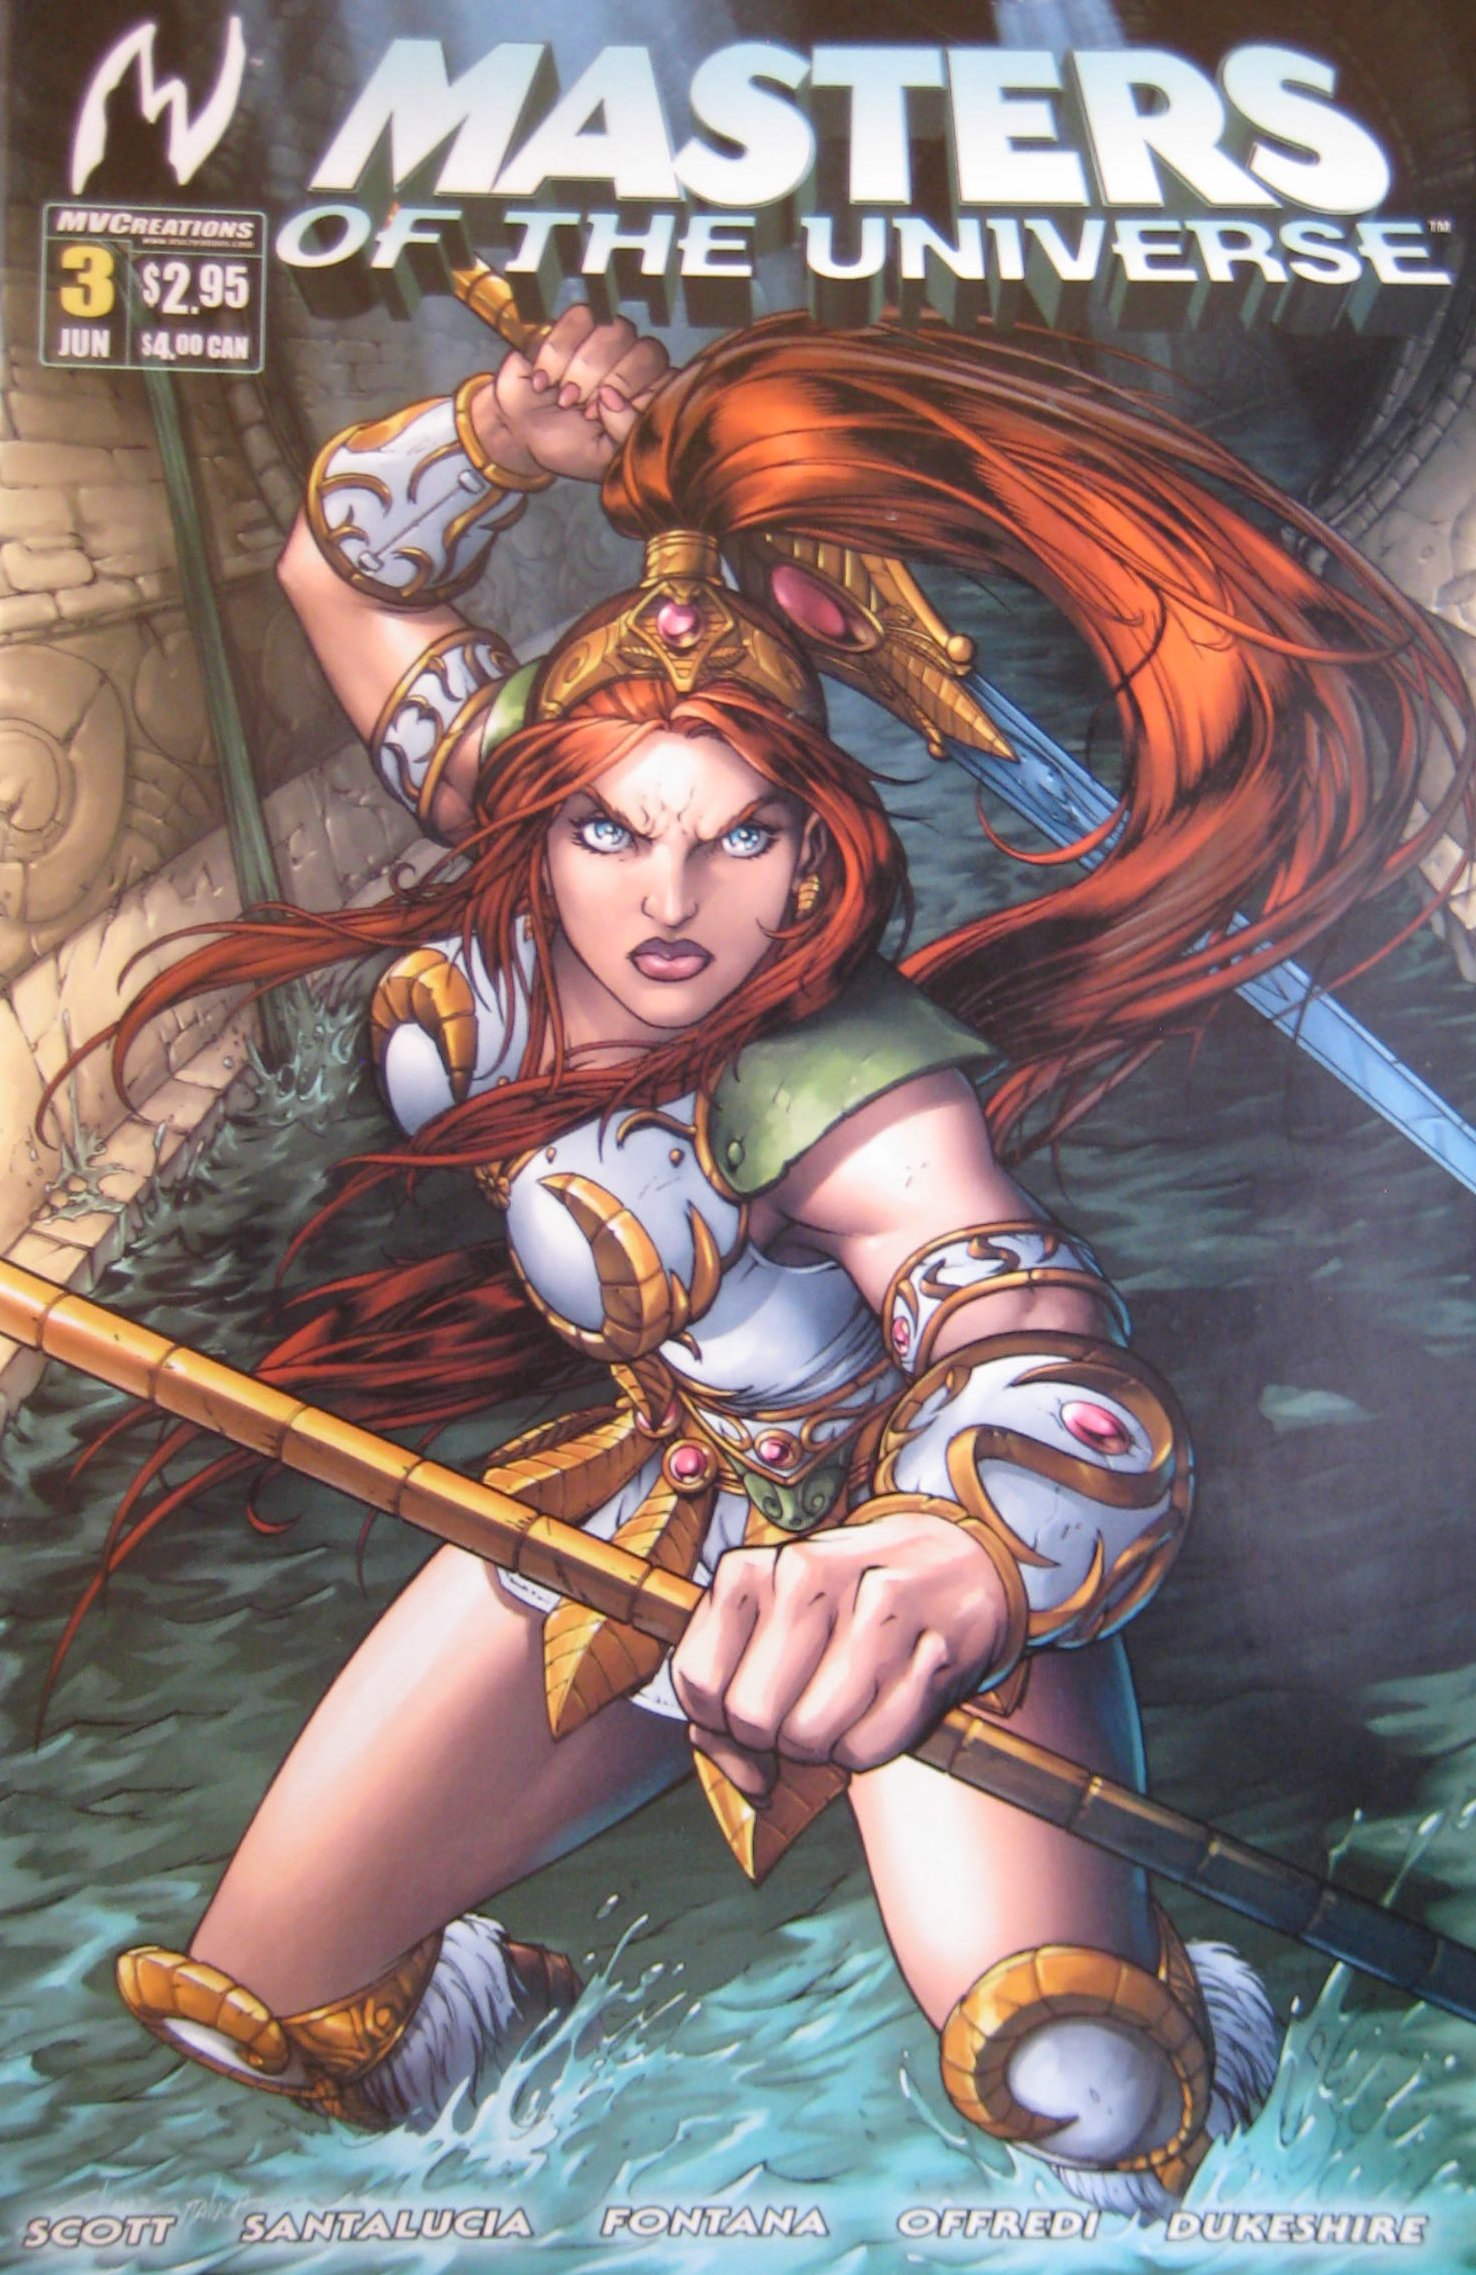 Read Online MASTERS OF THE UNIVERSE, ISSUE 3, June 2004 (Volume 3) PDF